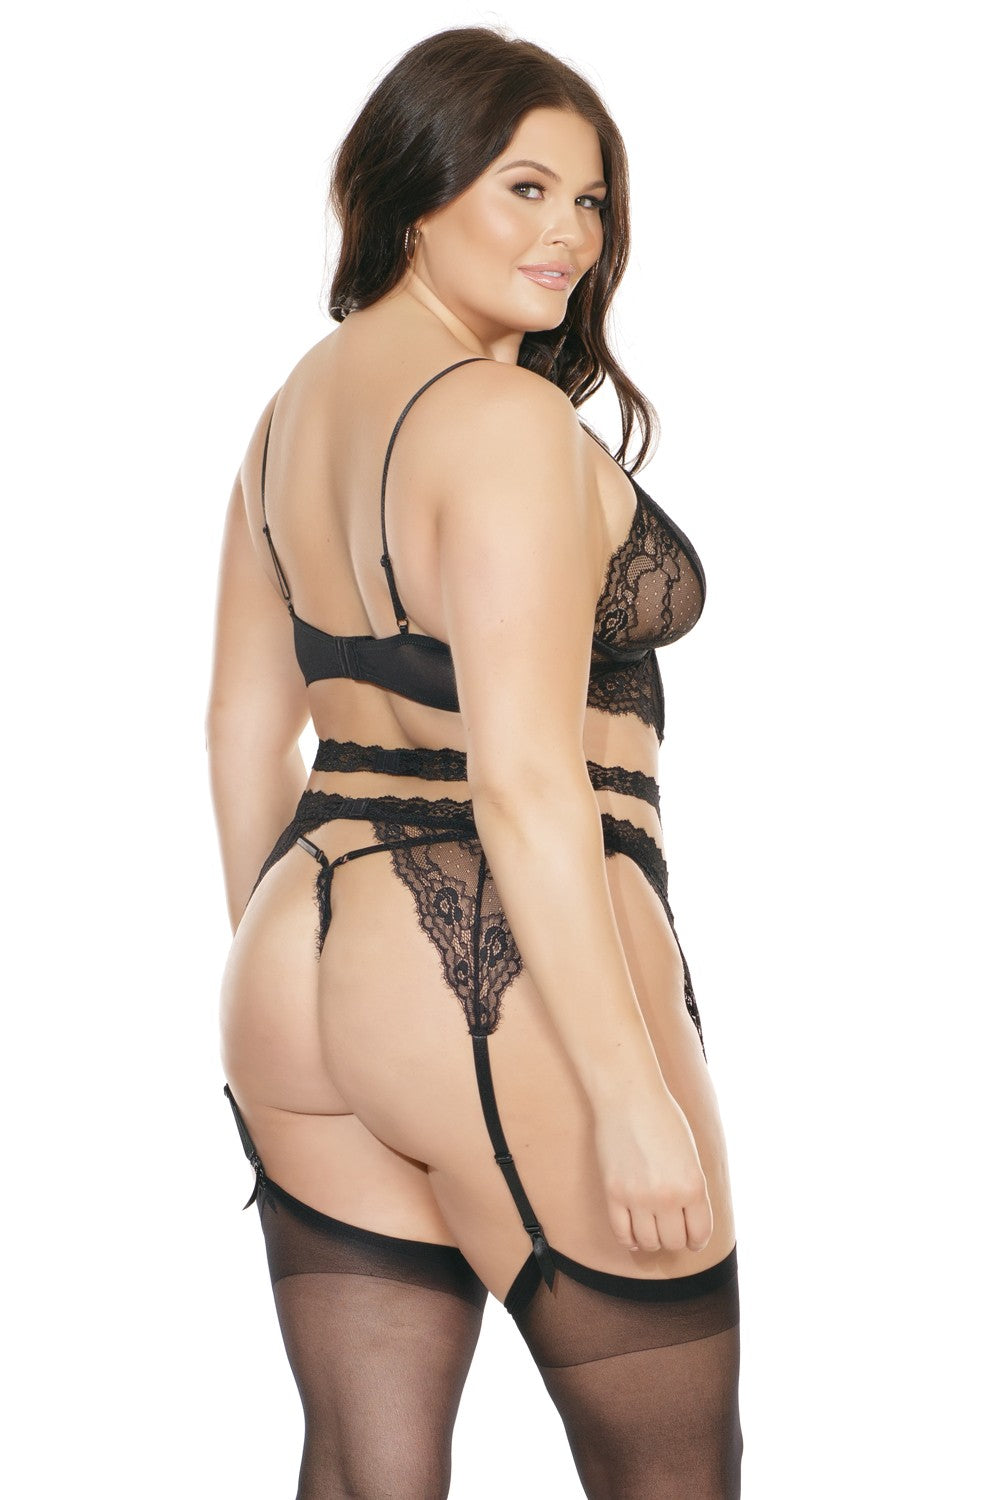 Lace Longline Bra, Garter Belt, & G-String Set (7217)